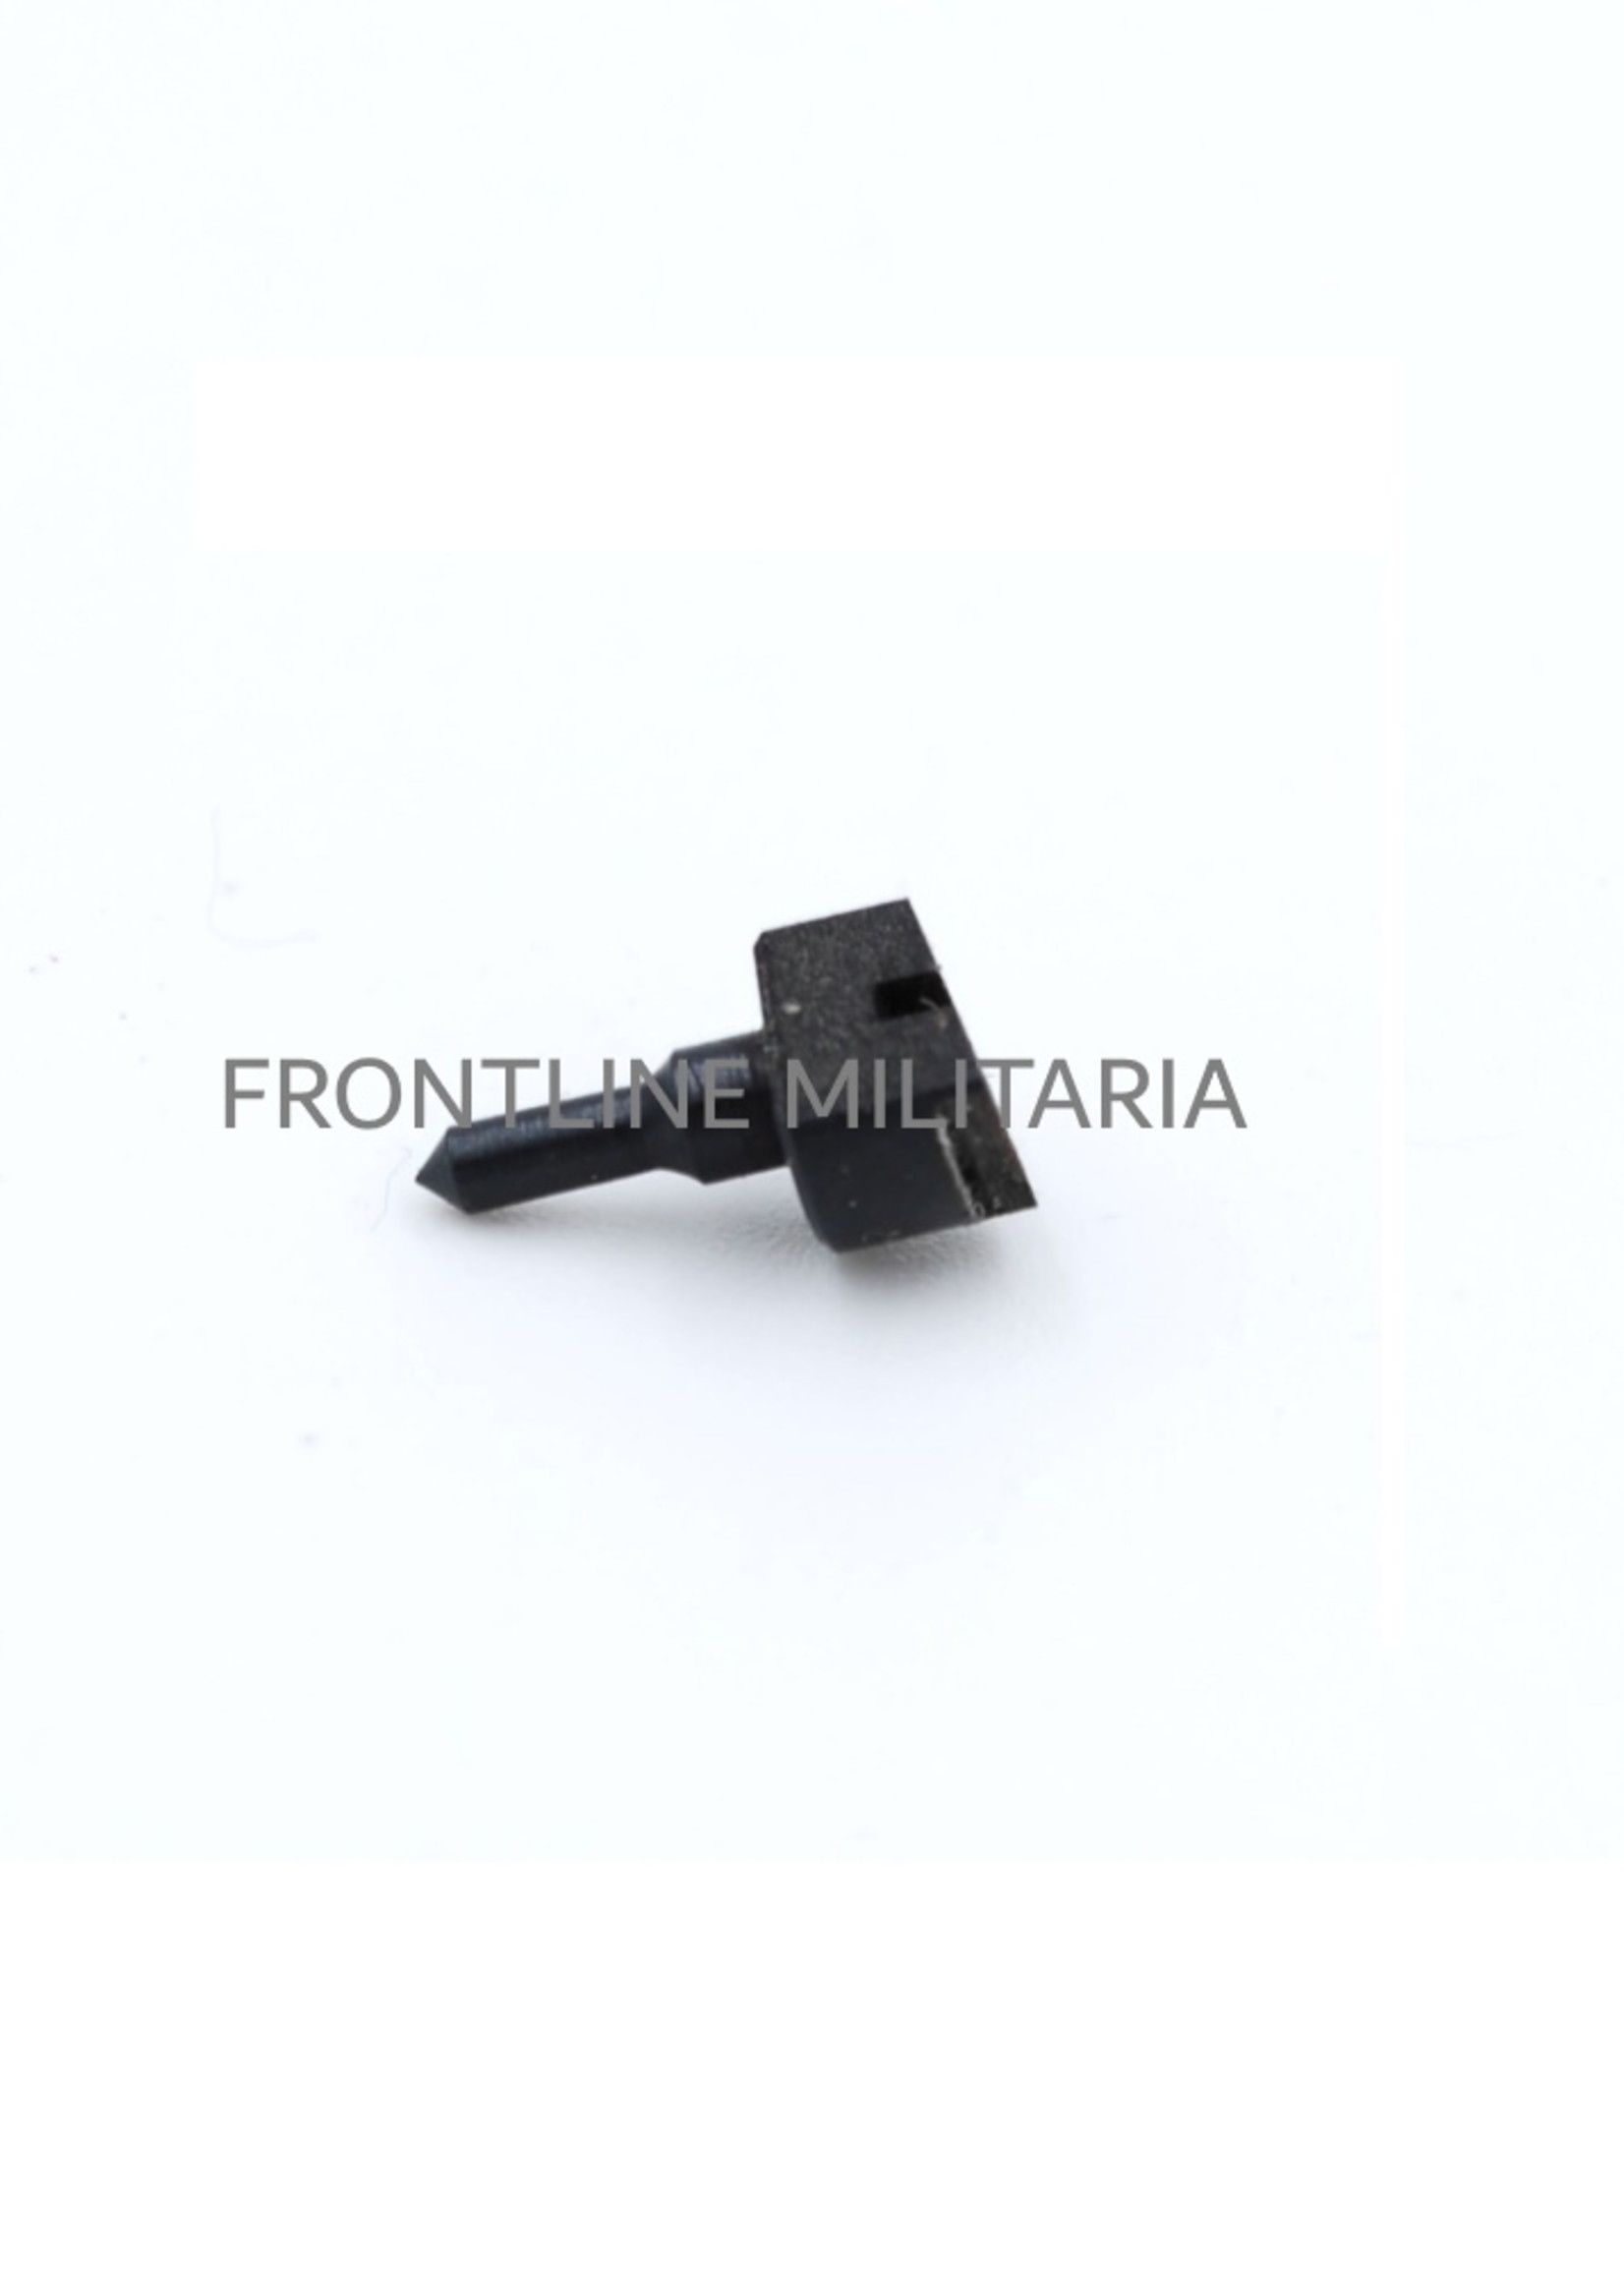 Extractor screw for the G43 and K43 rifle